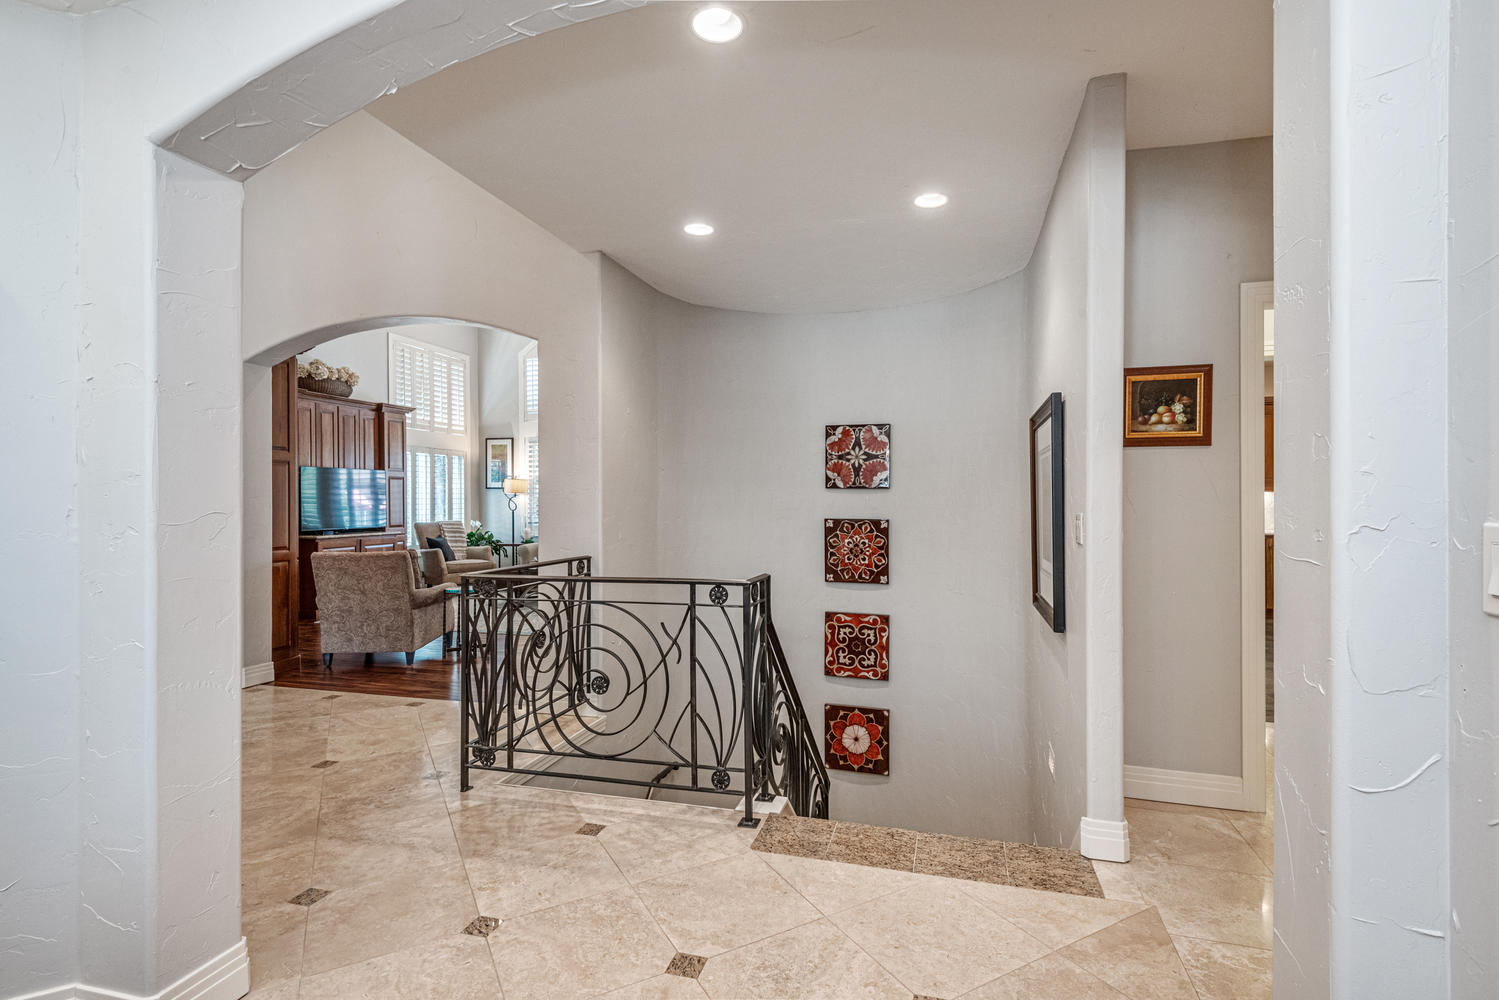 Head Downstairs to Check Out The Finished Basement